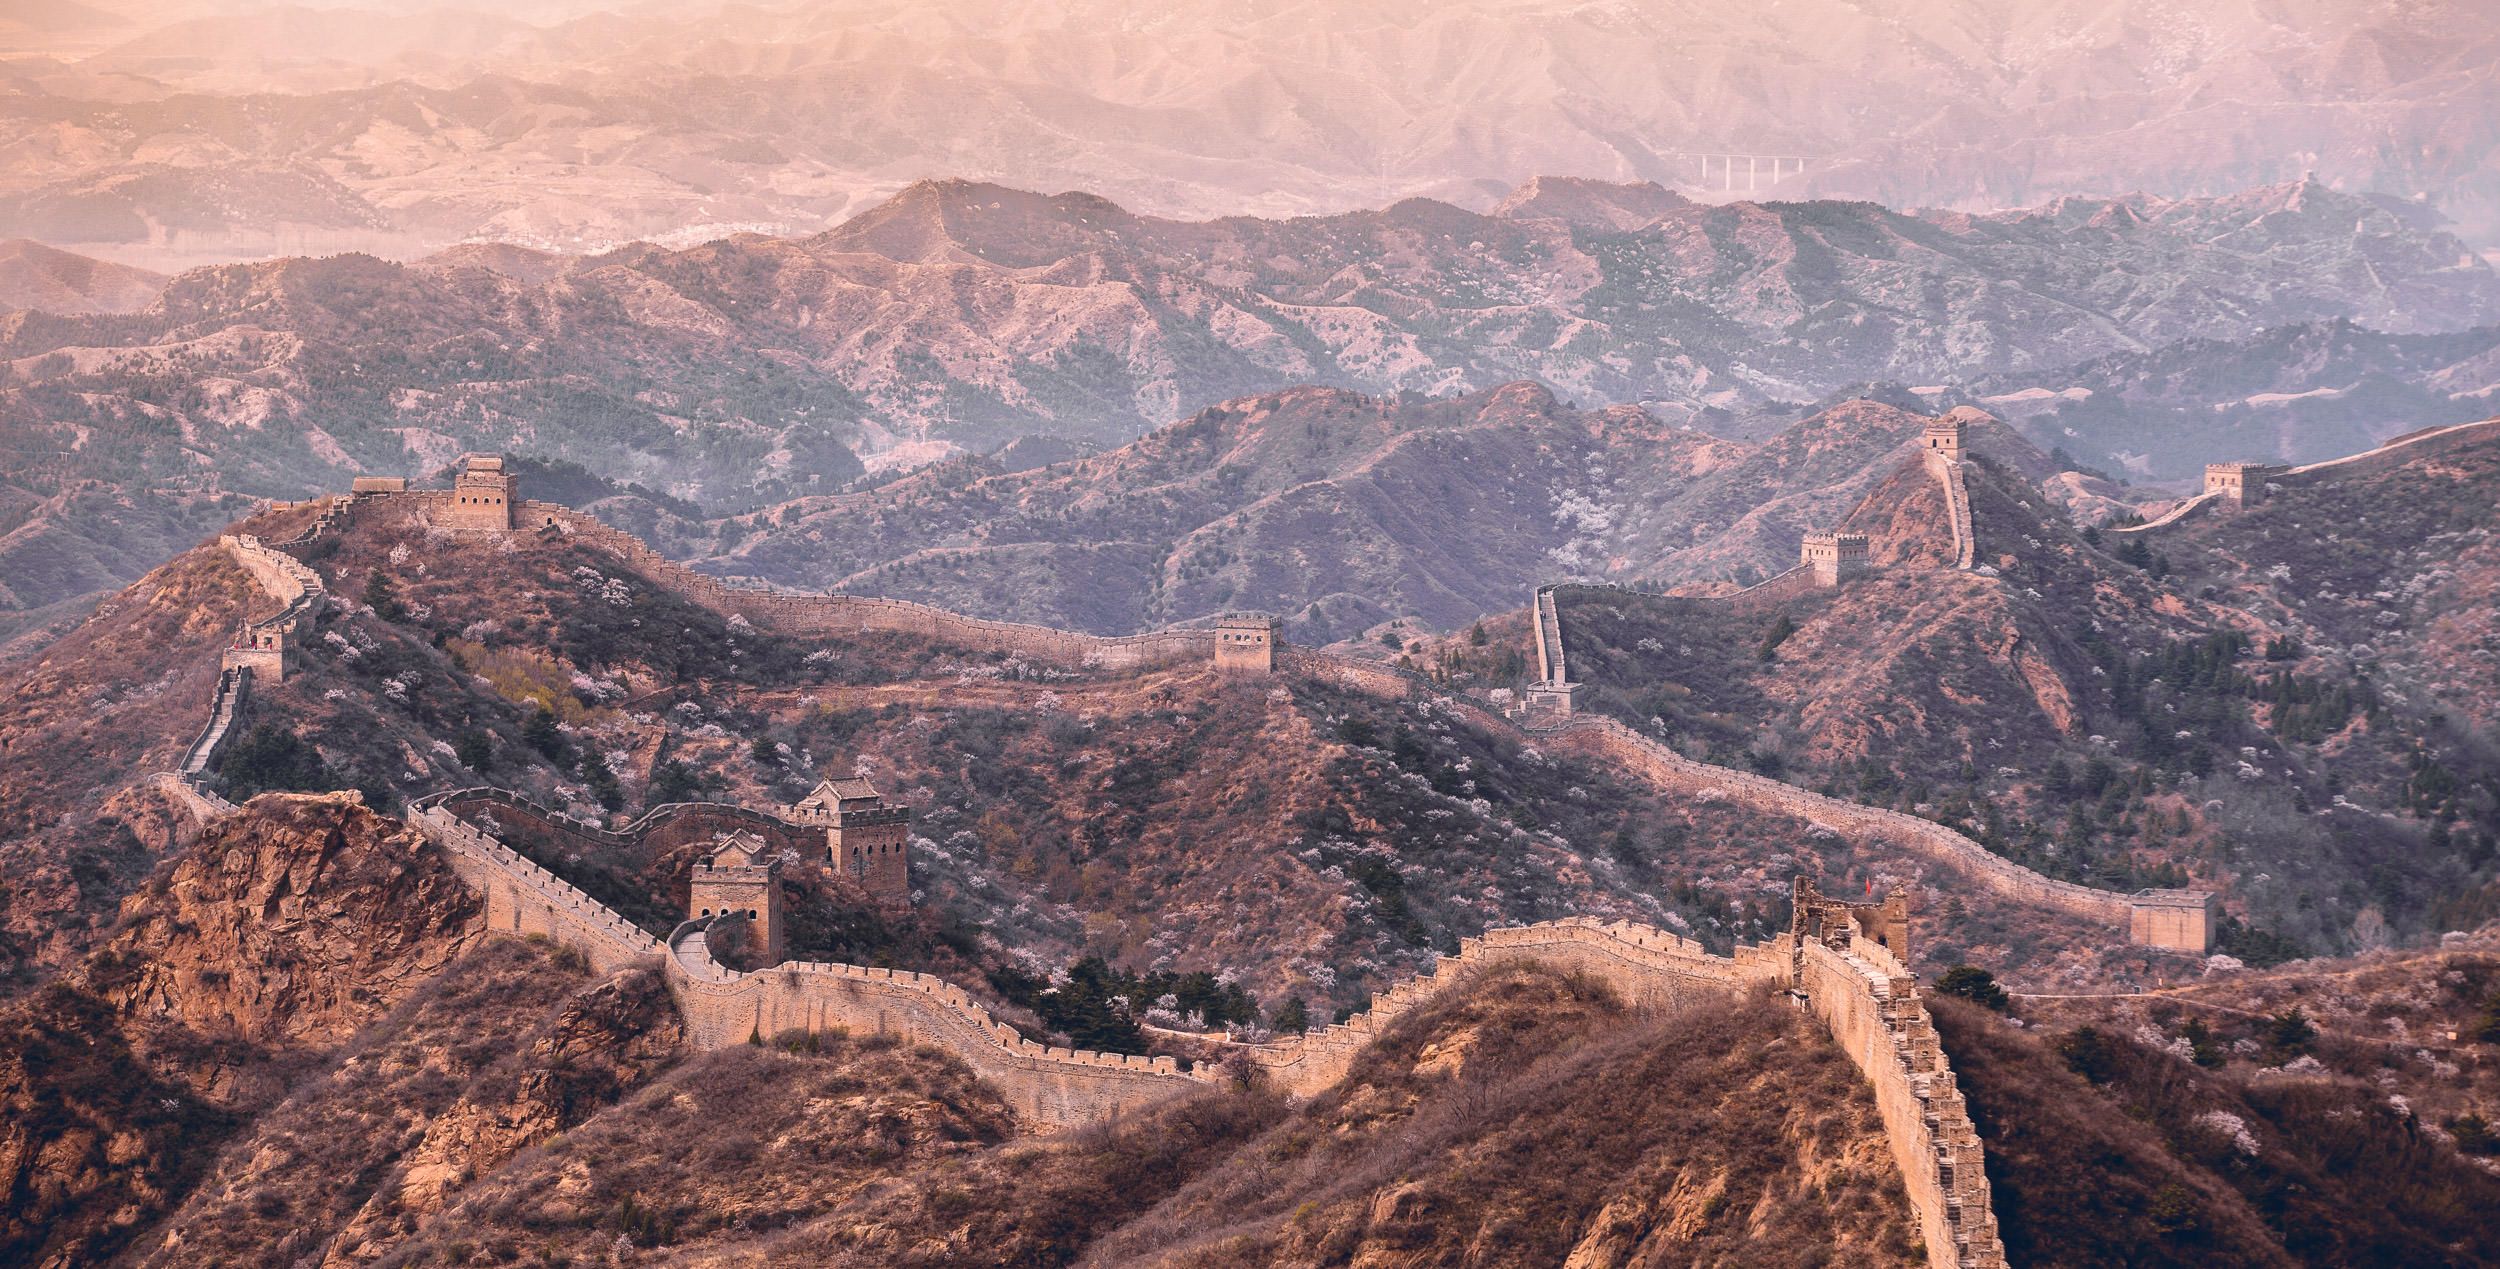 A restored section of the Great Wall of China, Jinshanling, sprawls across the Yan mountains